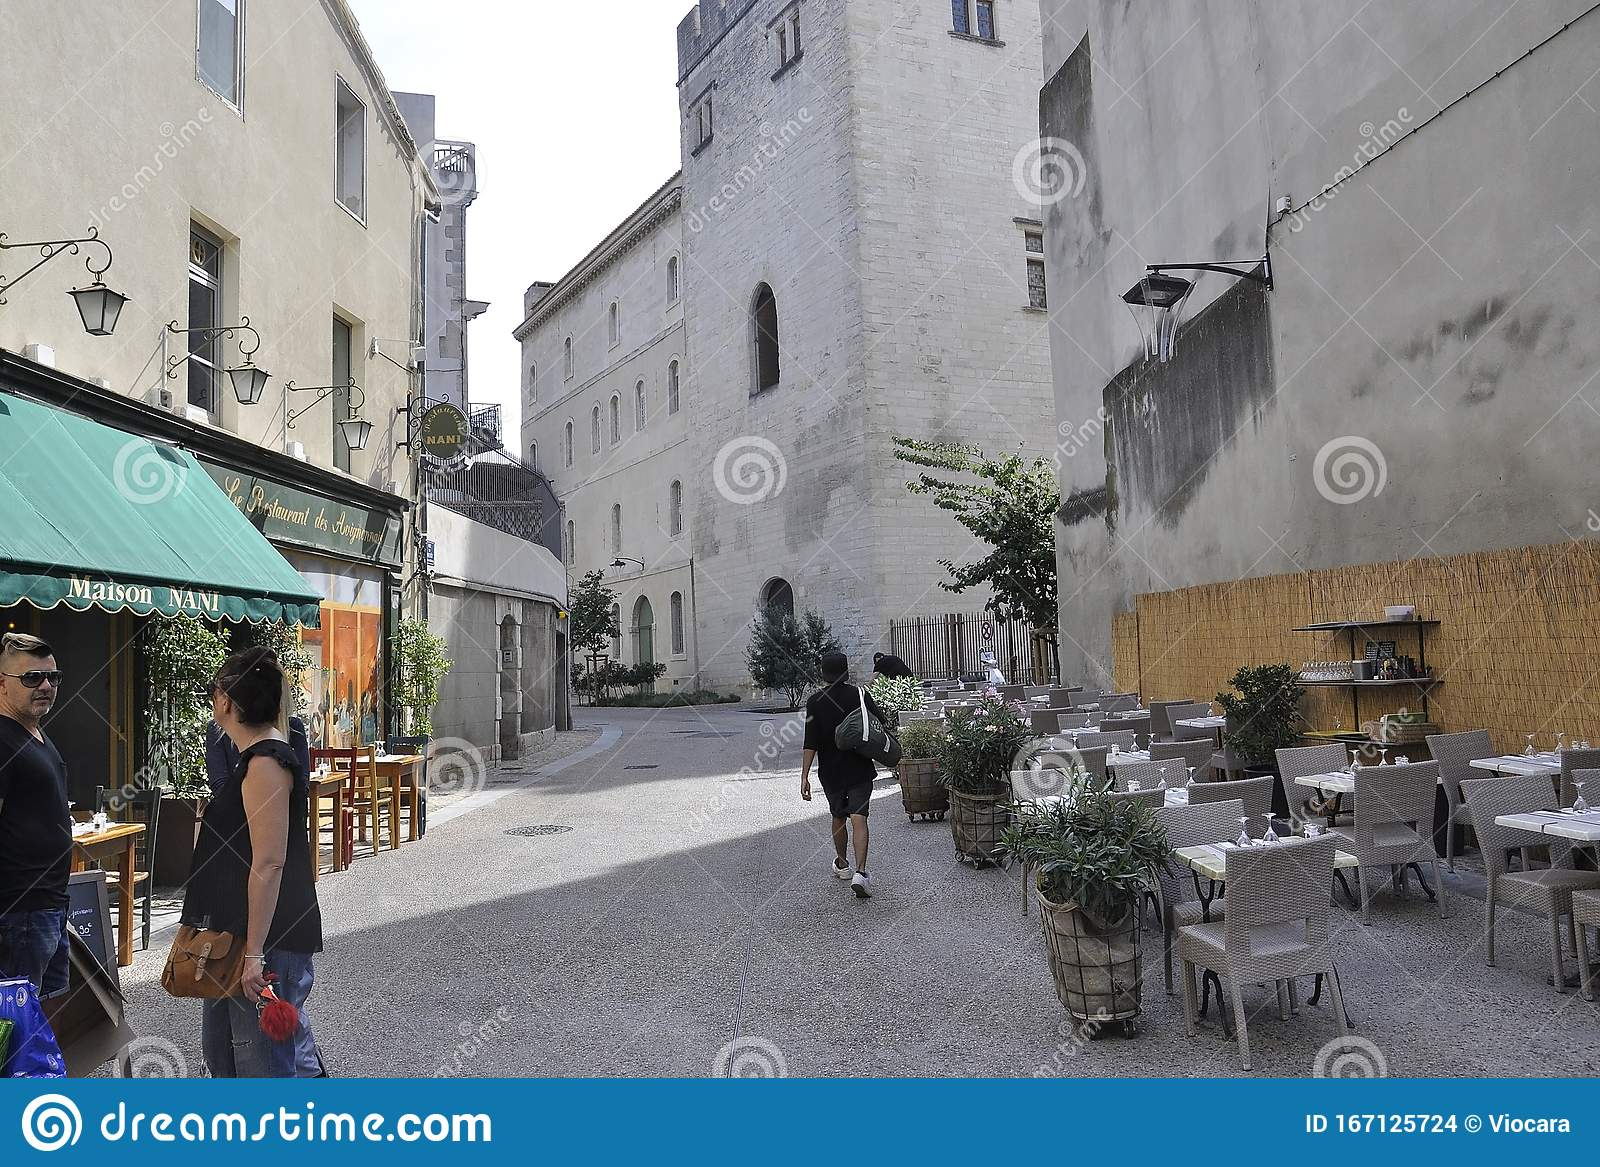 Avignon 10th September Narrow Street View With Outdoor Terrace Restaurant From Avignon In Provence France Editorial Stock Image Image Of Historic Lifestyle 167125724